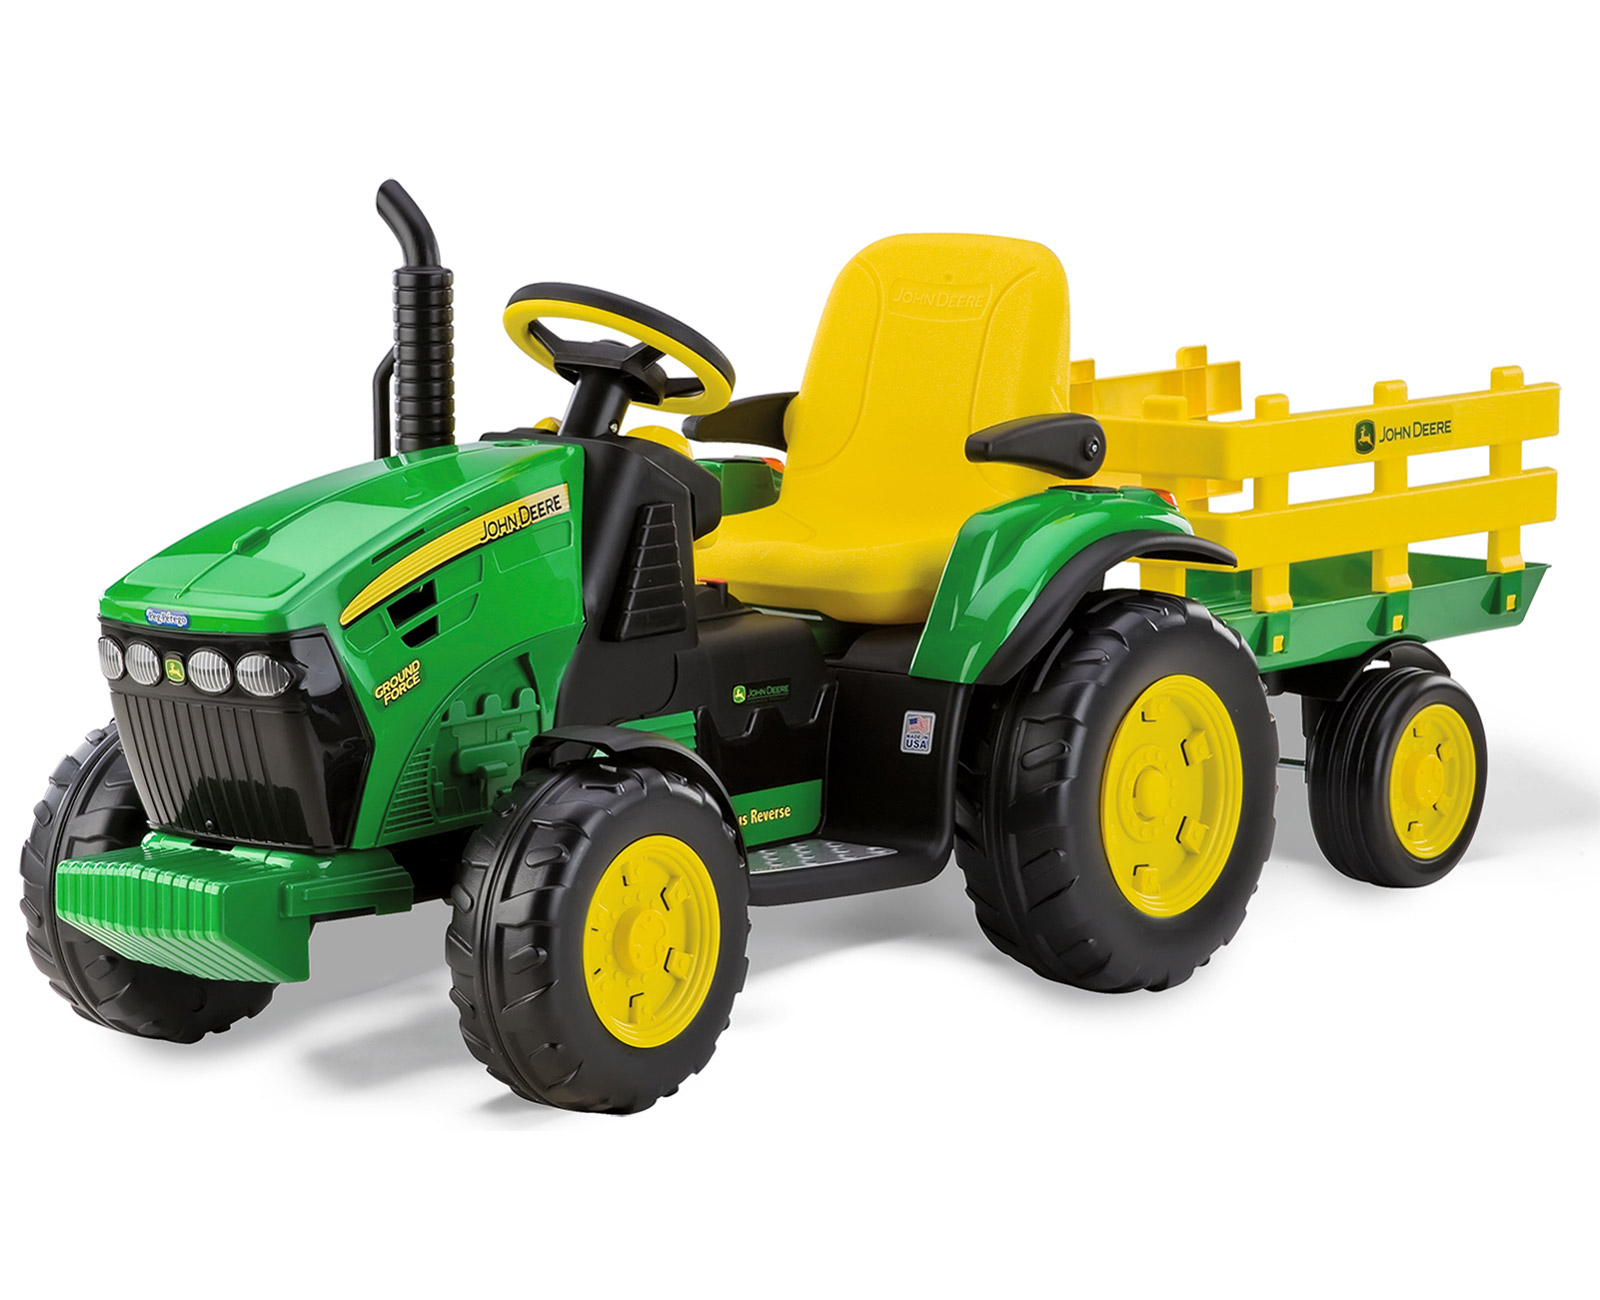 PEG PEREGO TRATTORE ELETTRICO JOHN DEERE GROUND FORCE W/TRAILER IGOR0047